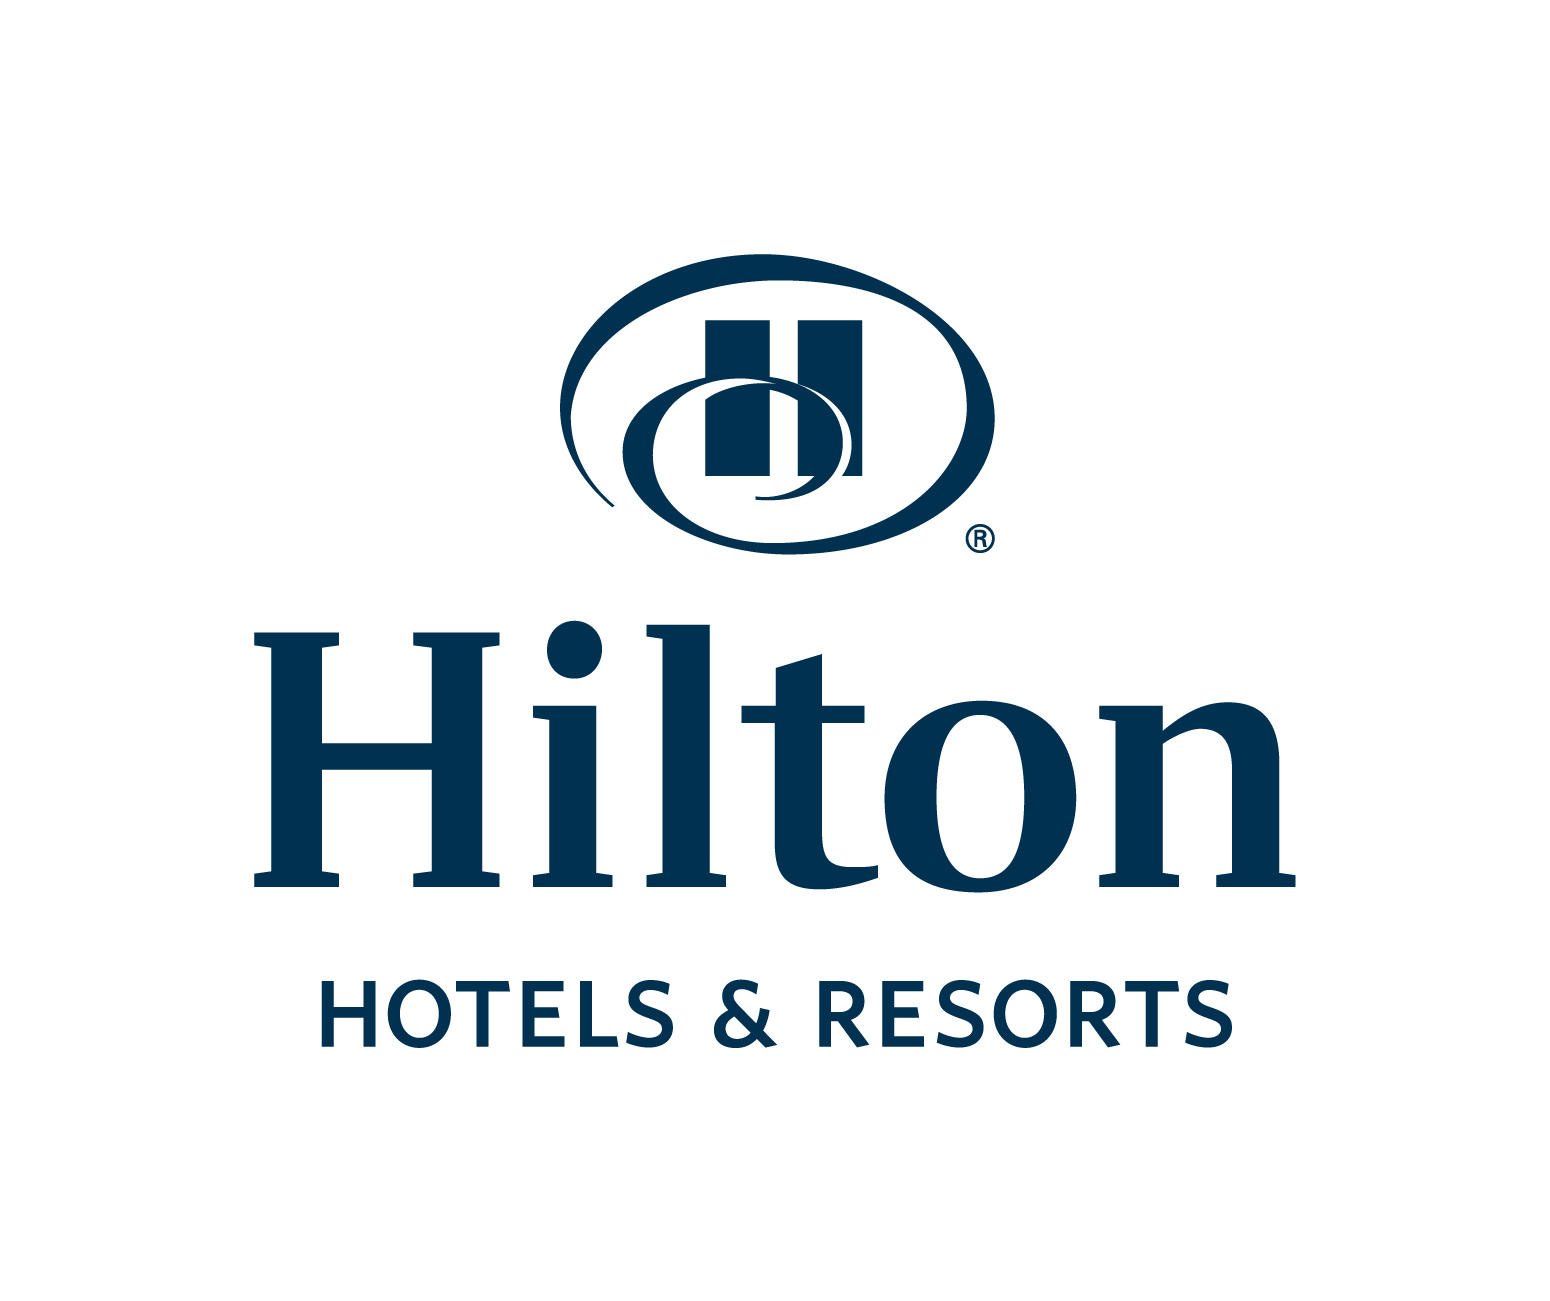 From Bucket List To Booked Hilton Hotels Resorts Ems Guests Make Travel Dreams A Reality Business Wire